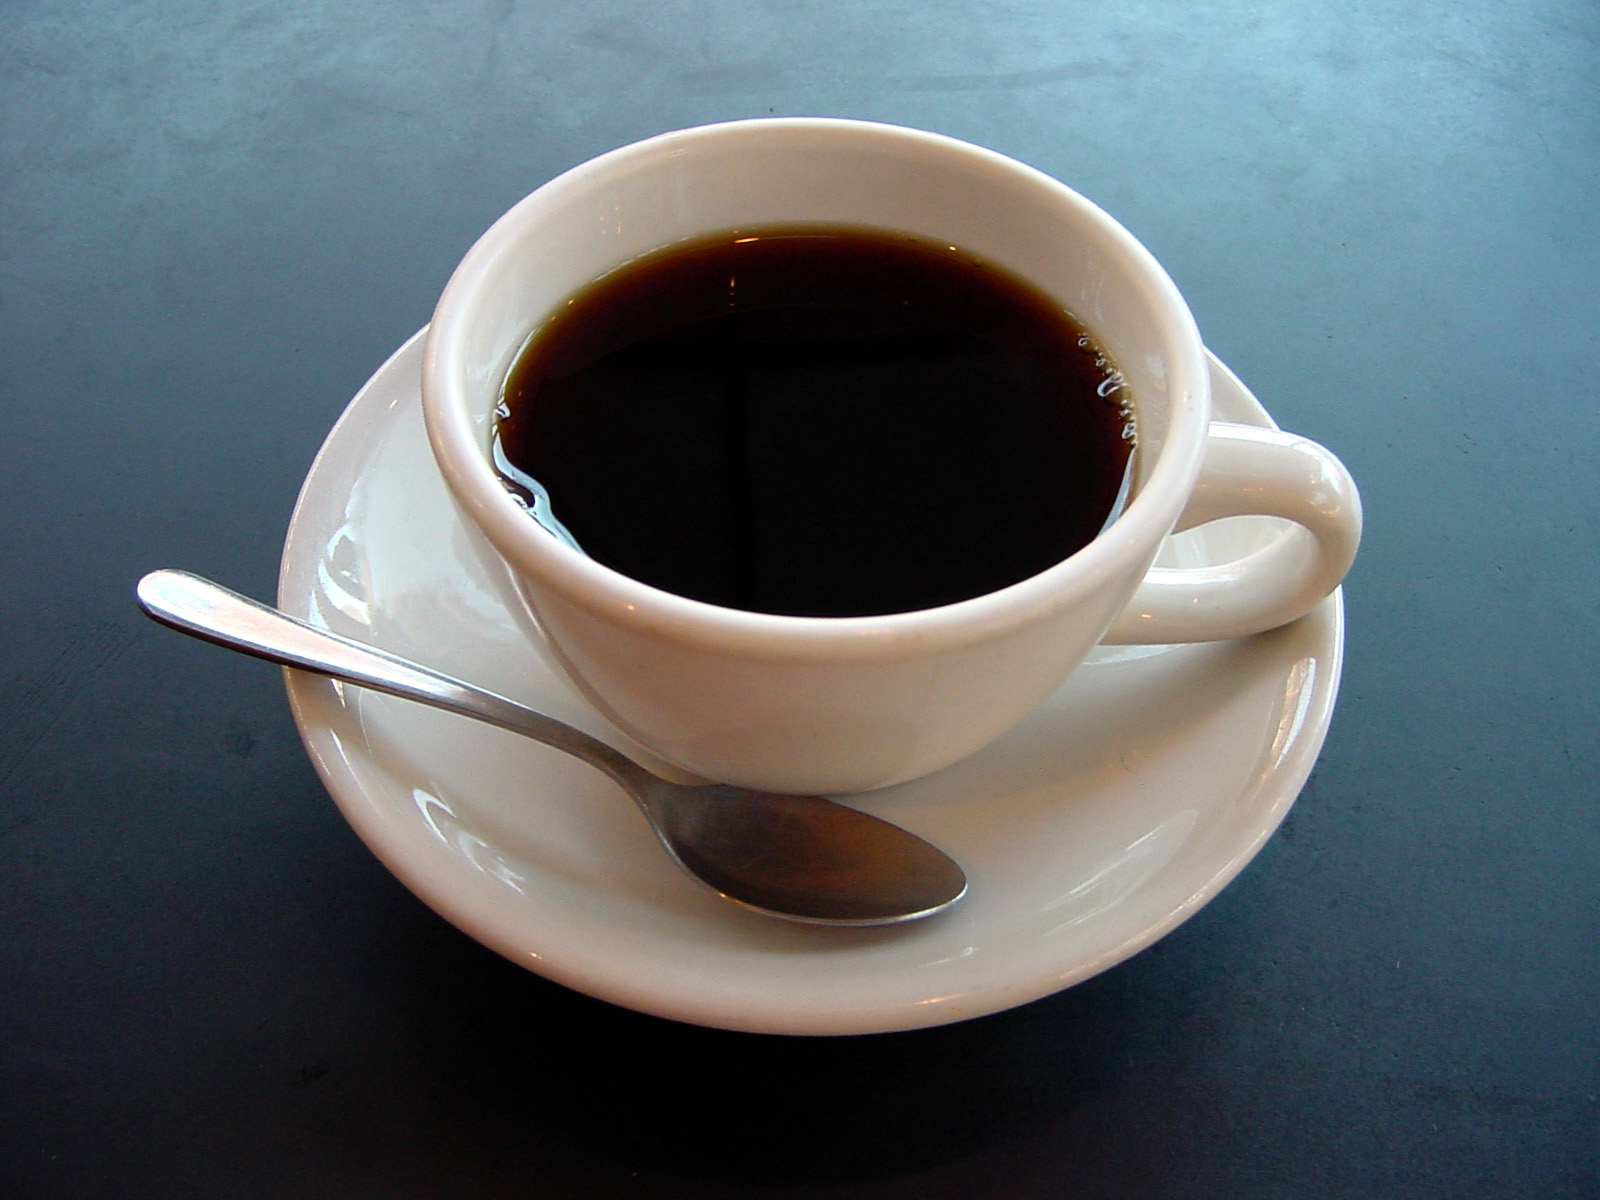 Always Meet For Coffee: Don't Pass Up Career Opportunities, Even When You're Not Looking